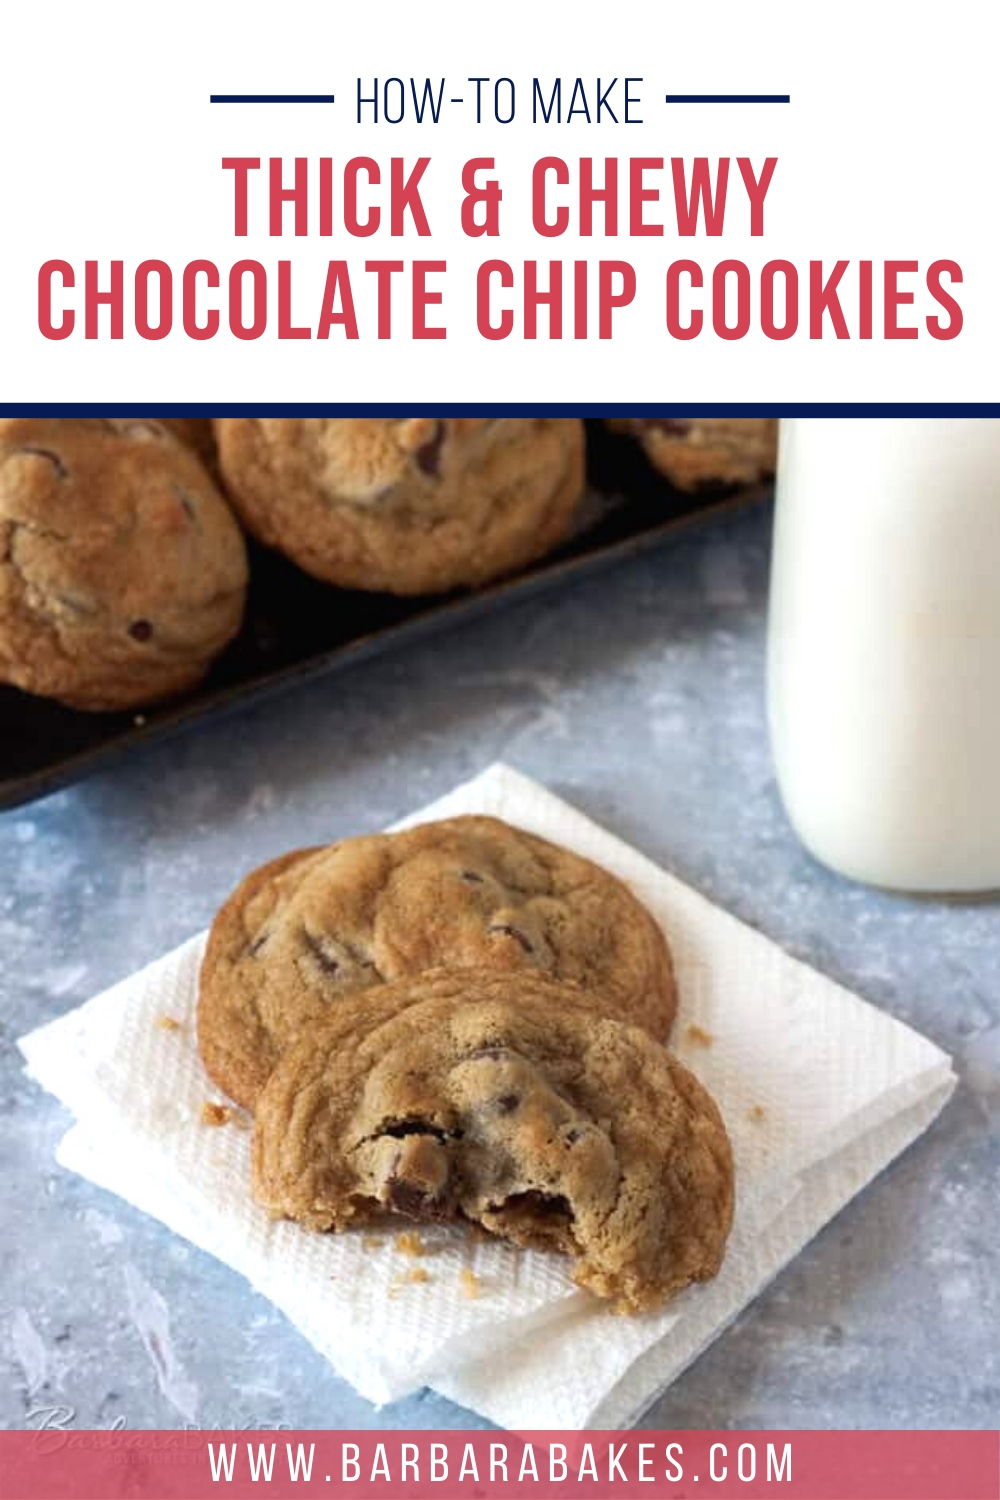 If you like soft, chewy cookies, these thick and chewy chocolate chip cookies are for you. via @barbarabakes